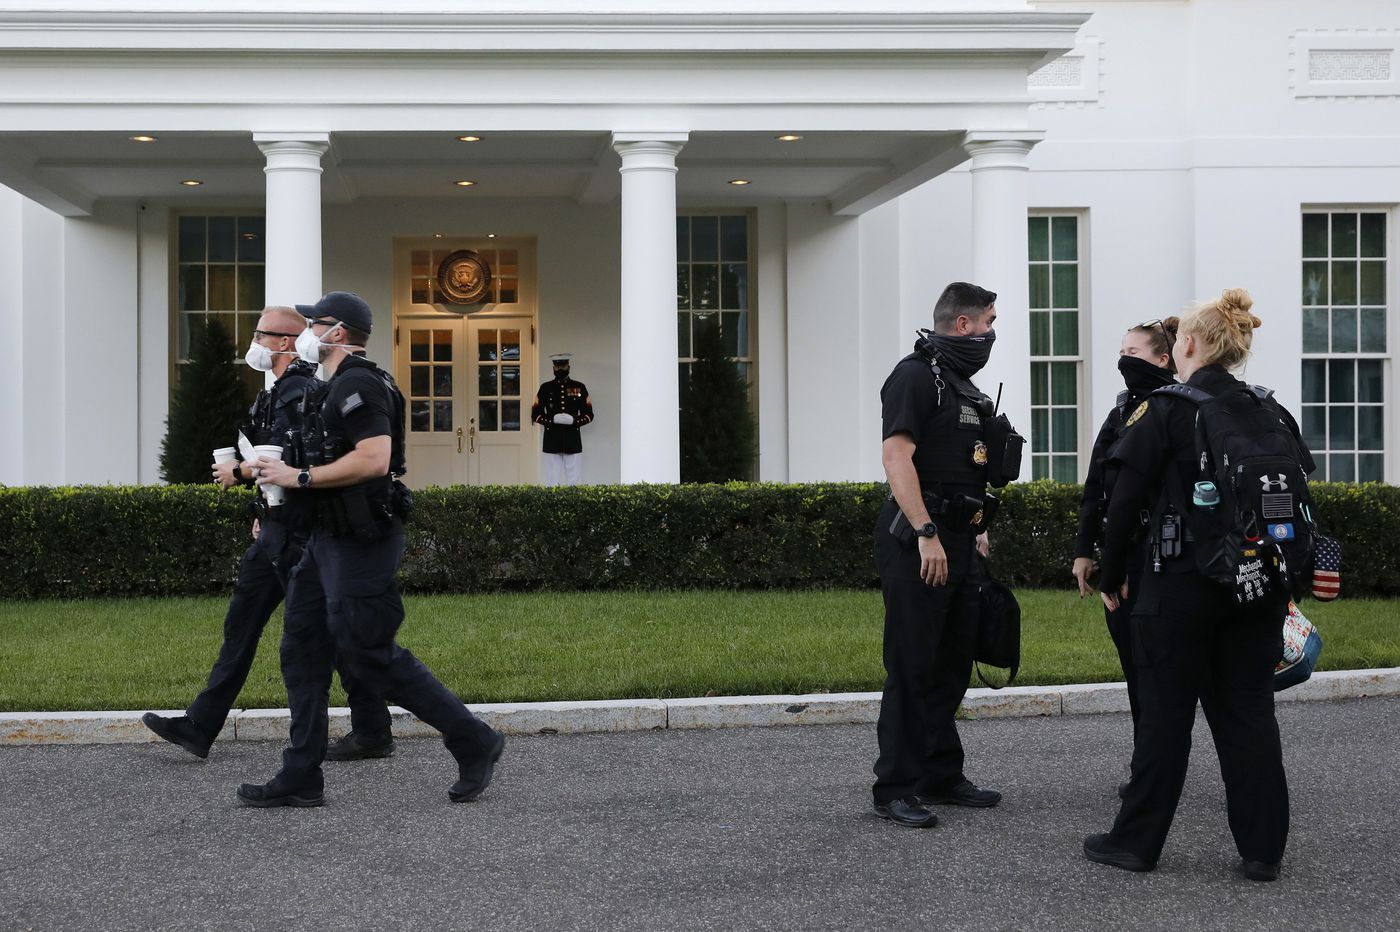 More than 130 Secret Service officers are said to be infected with coronavirus or quarantining in the wake of Trump's campaign travel